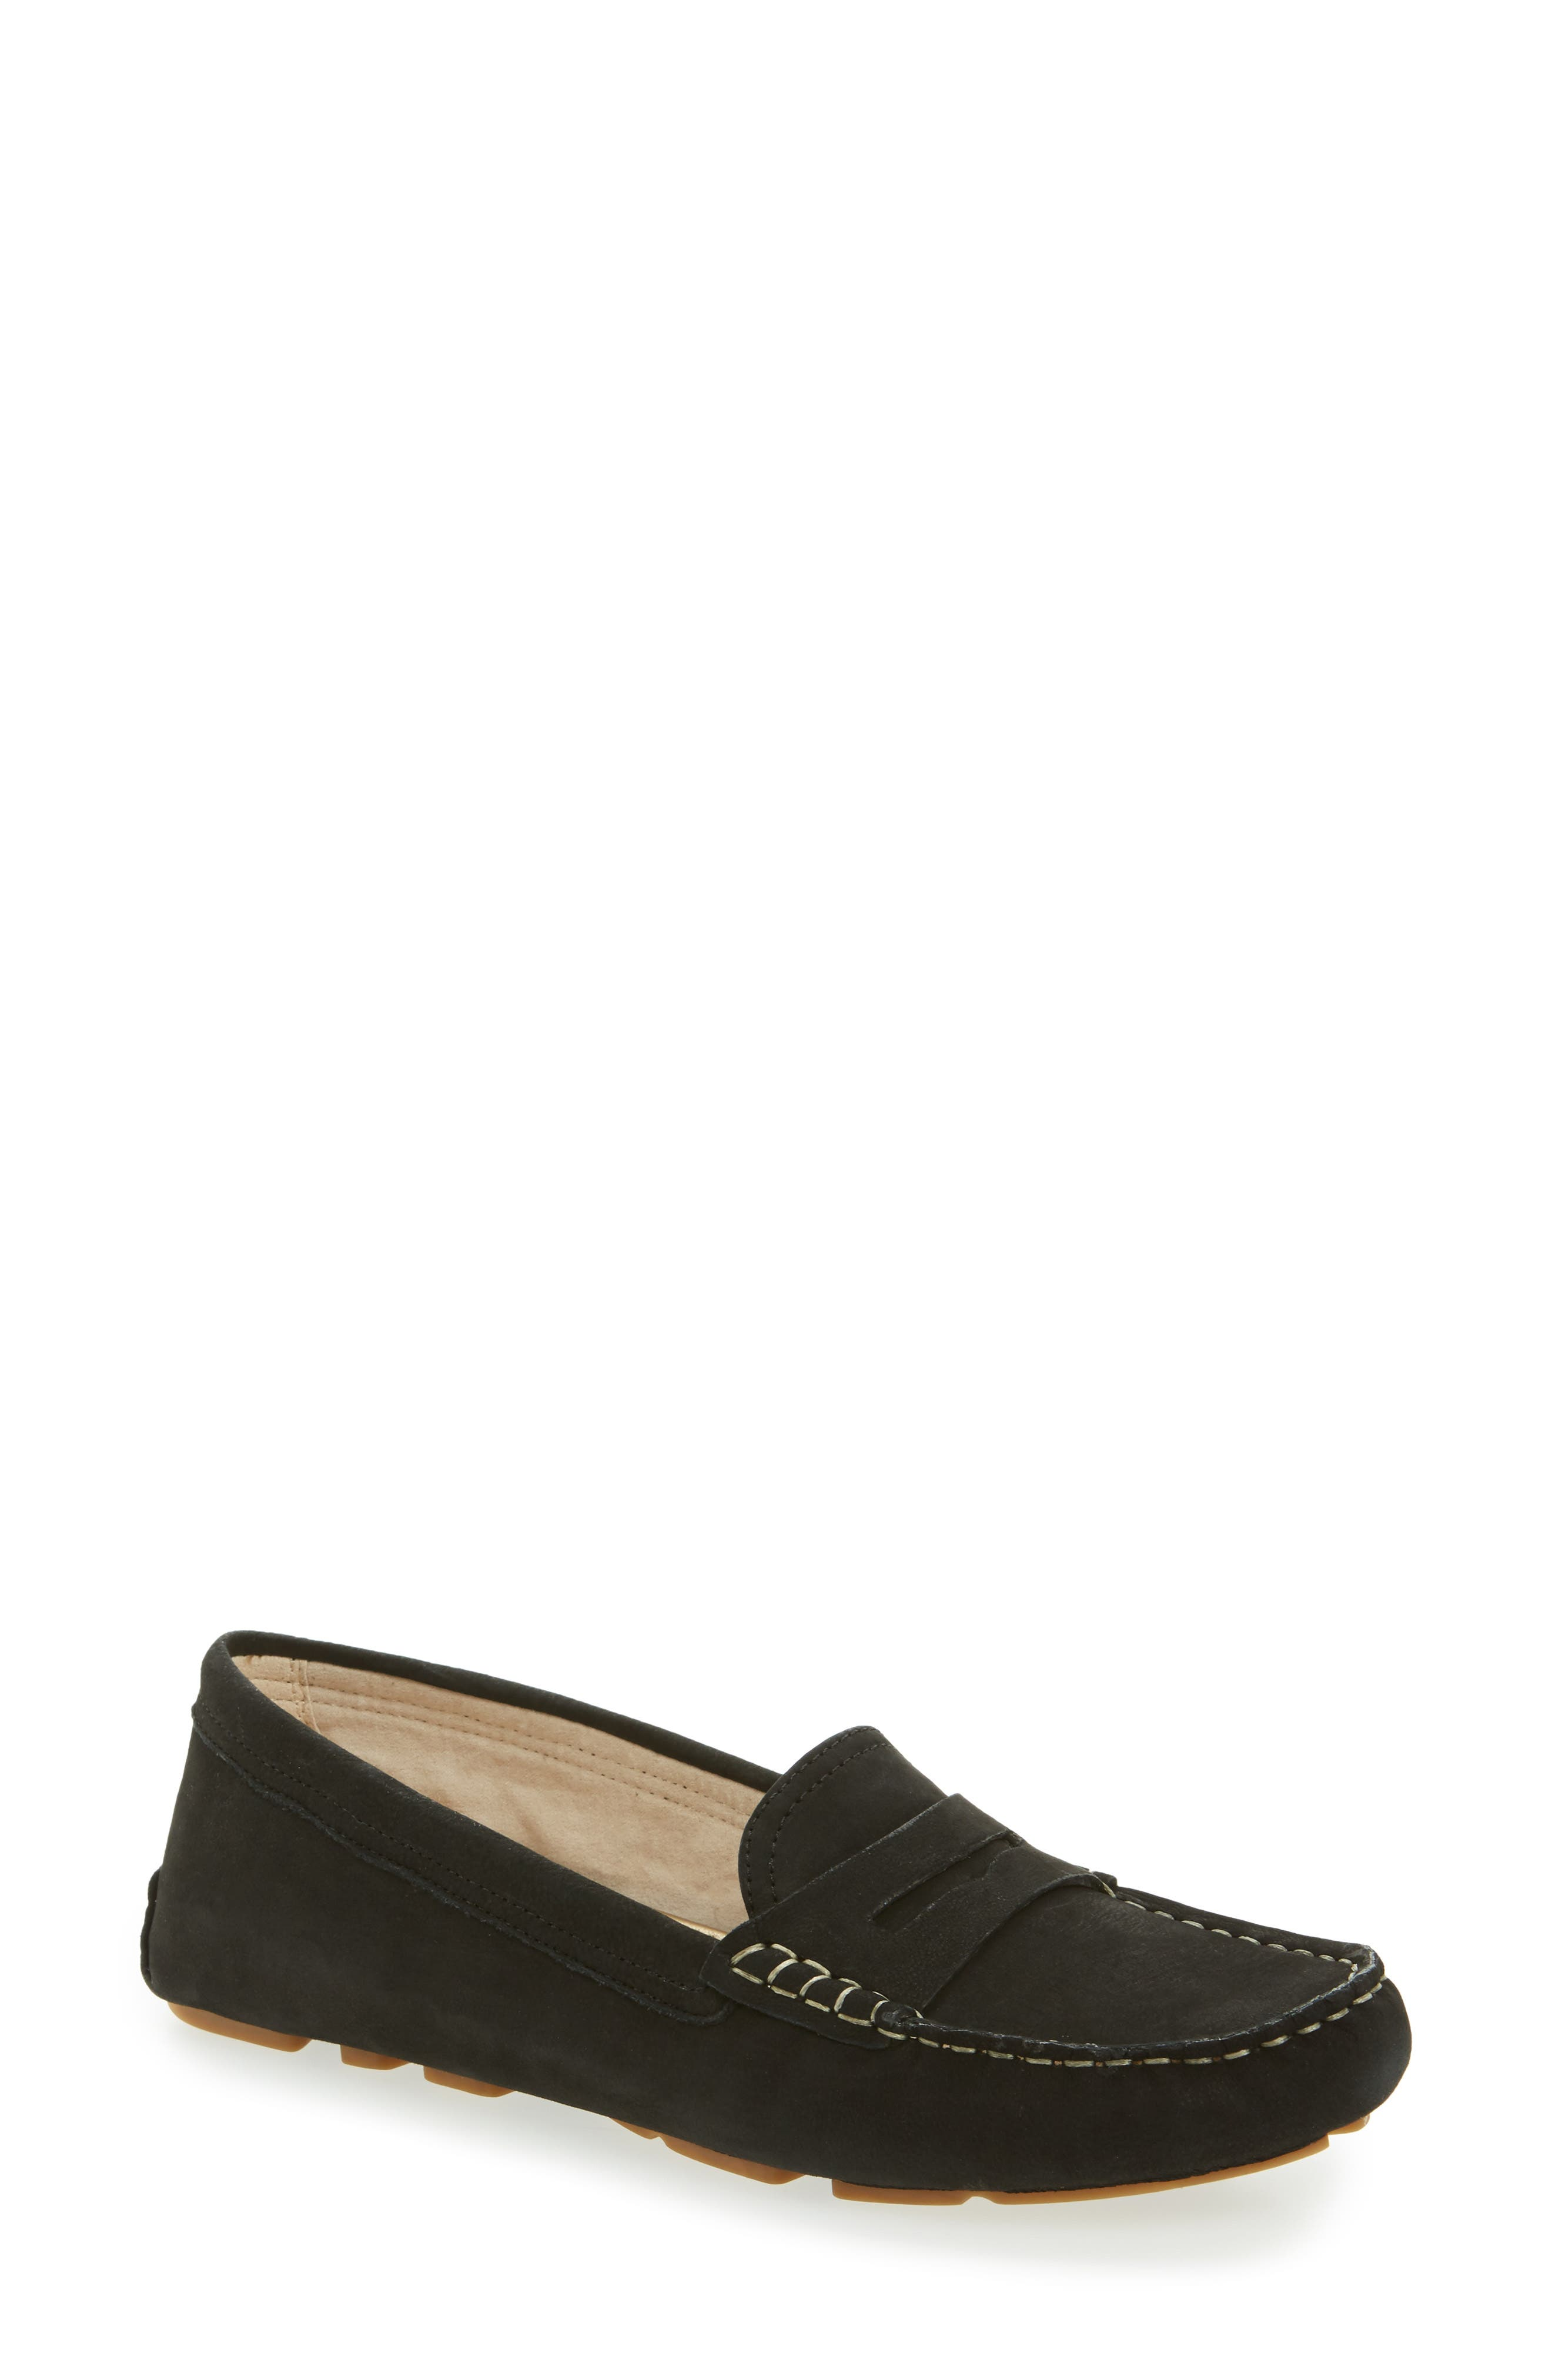 Filly Moc Toe Loafer, Main, color, 001